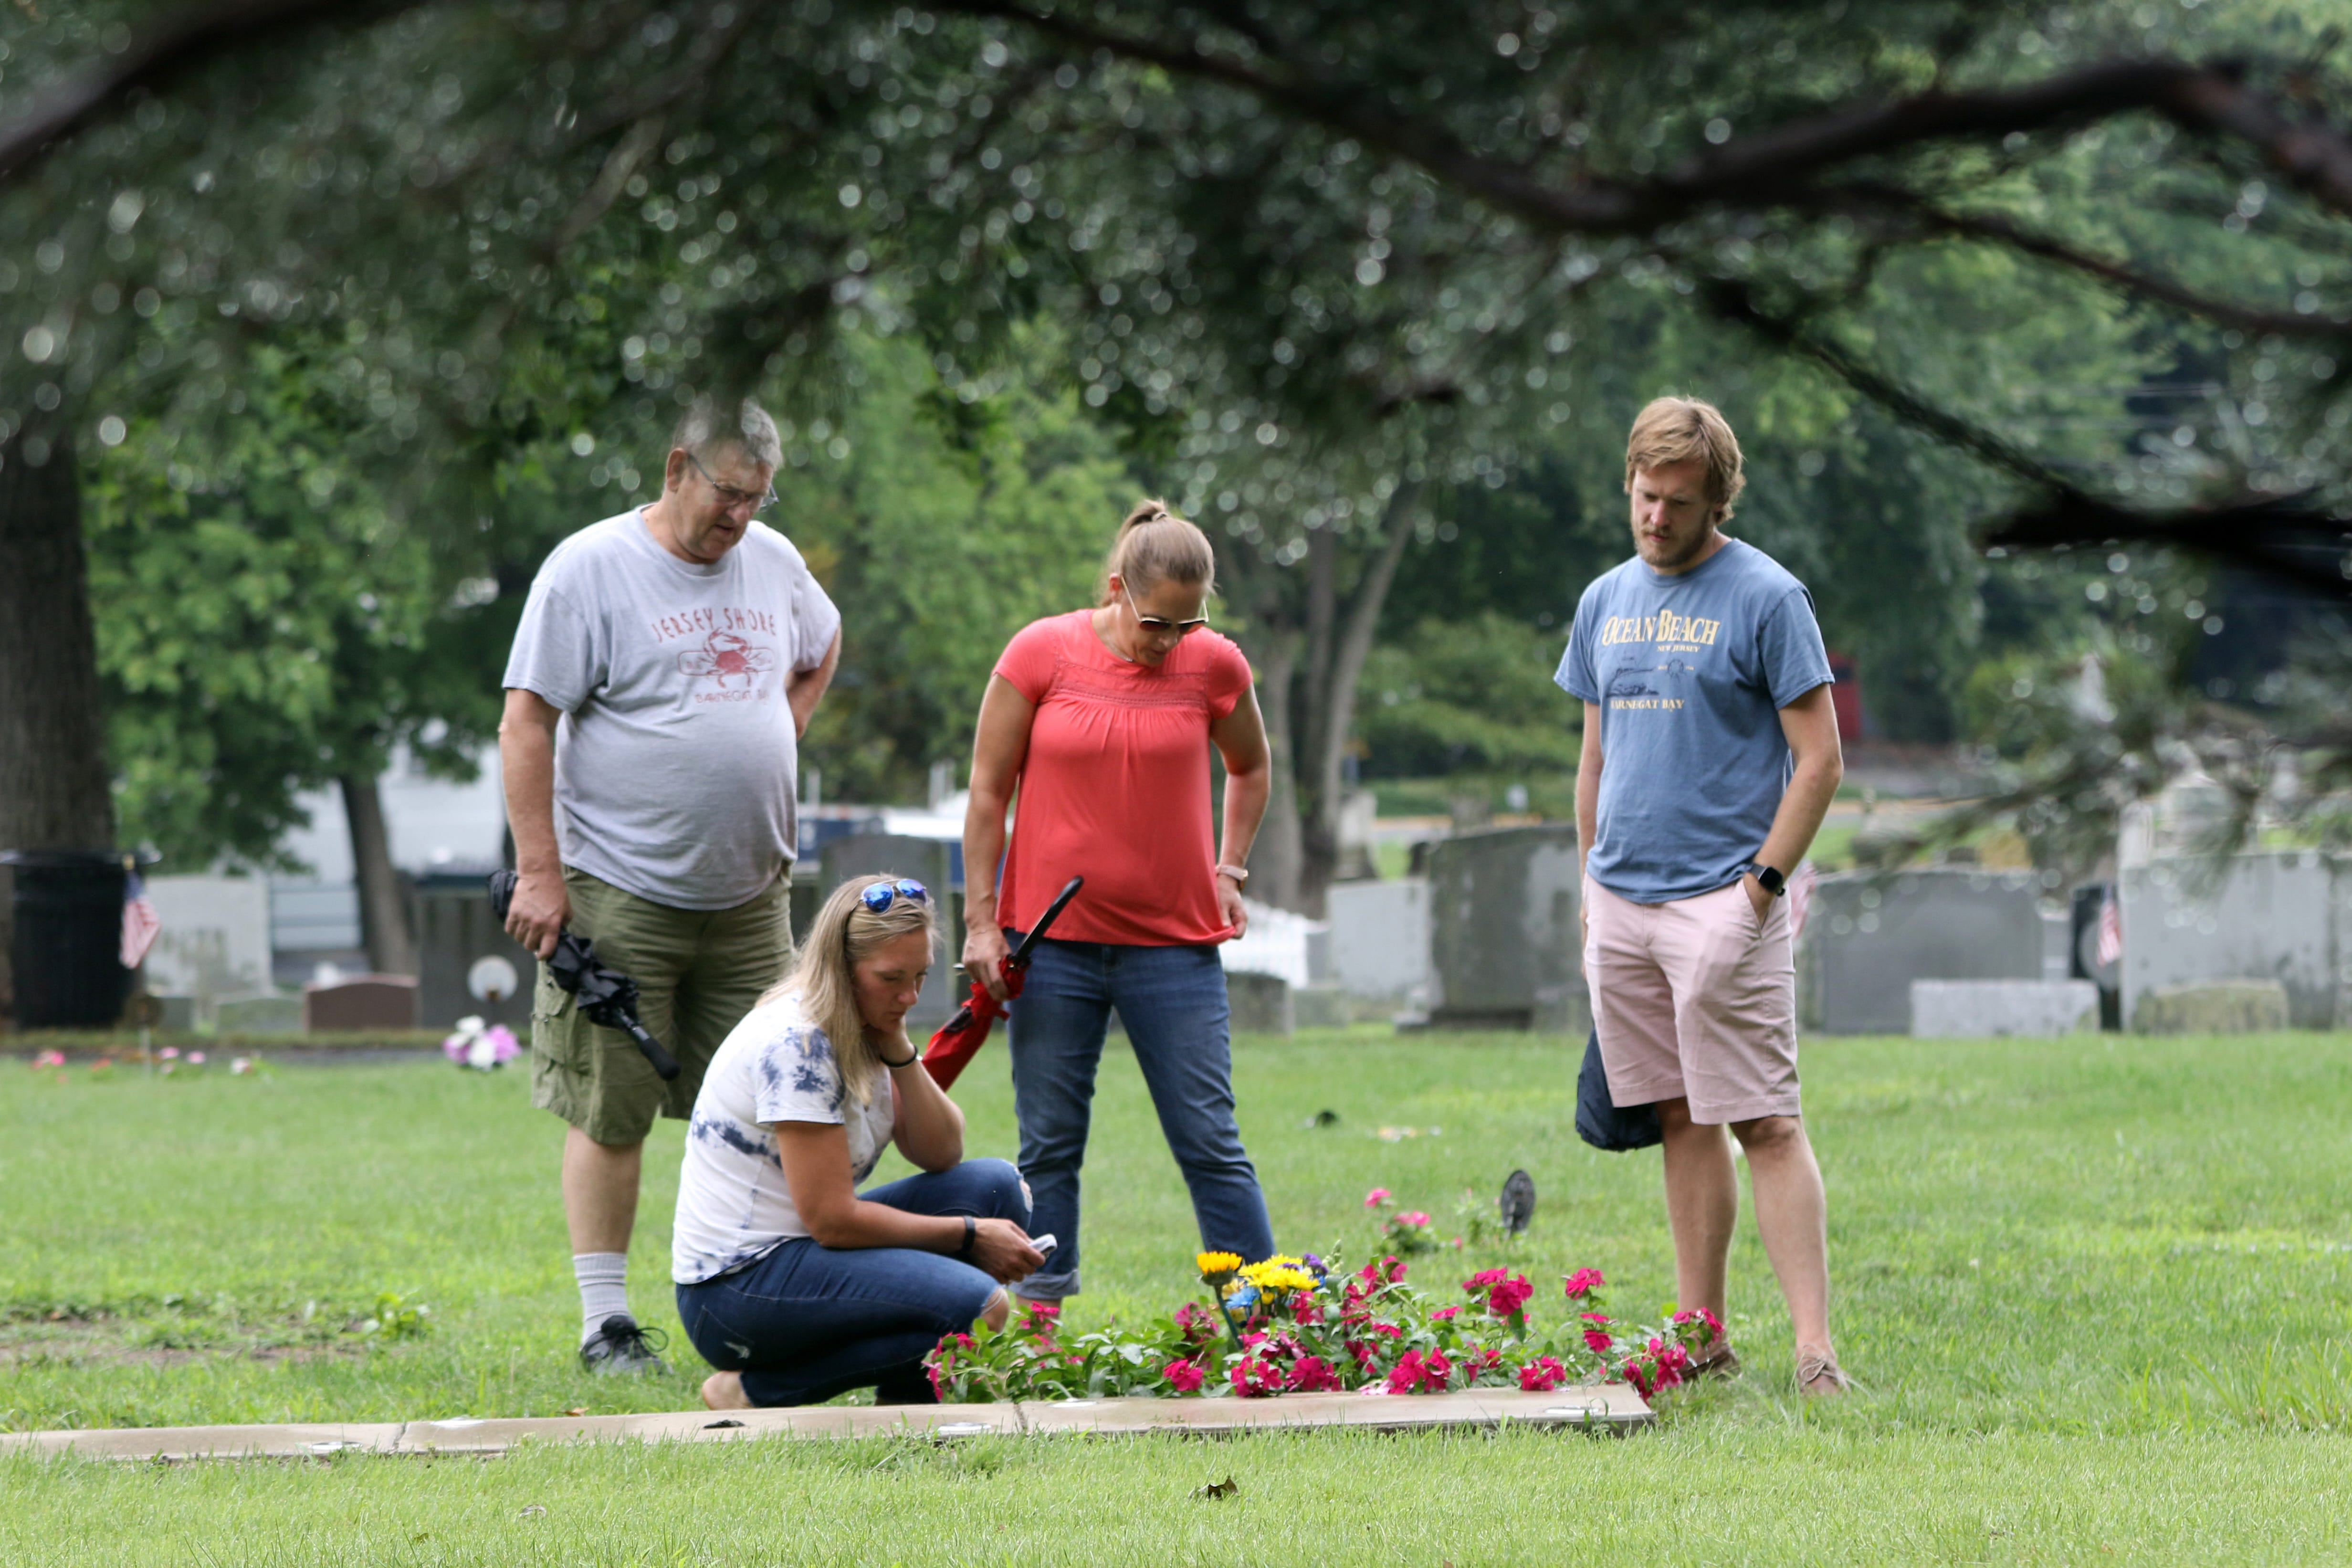 Bill Birchenough, Kristin Carbone (kneeling), Kerri Acuna and Matt Birchenough remember  Barbara Birchenough at her plot, at the Wyckoff Reformed Church Cemetery.  Birchenough worked as a Registered Nurse for Clara Maass Medical Center, where she died of COVID-19, in April, just after her 65th birthday.   Monday, August 17, 2020